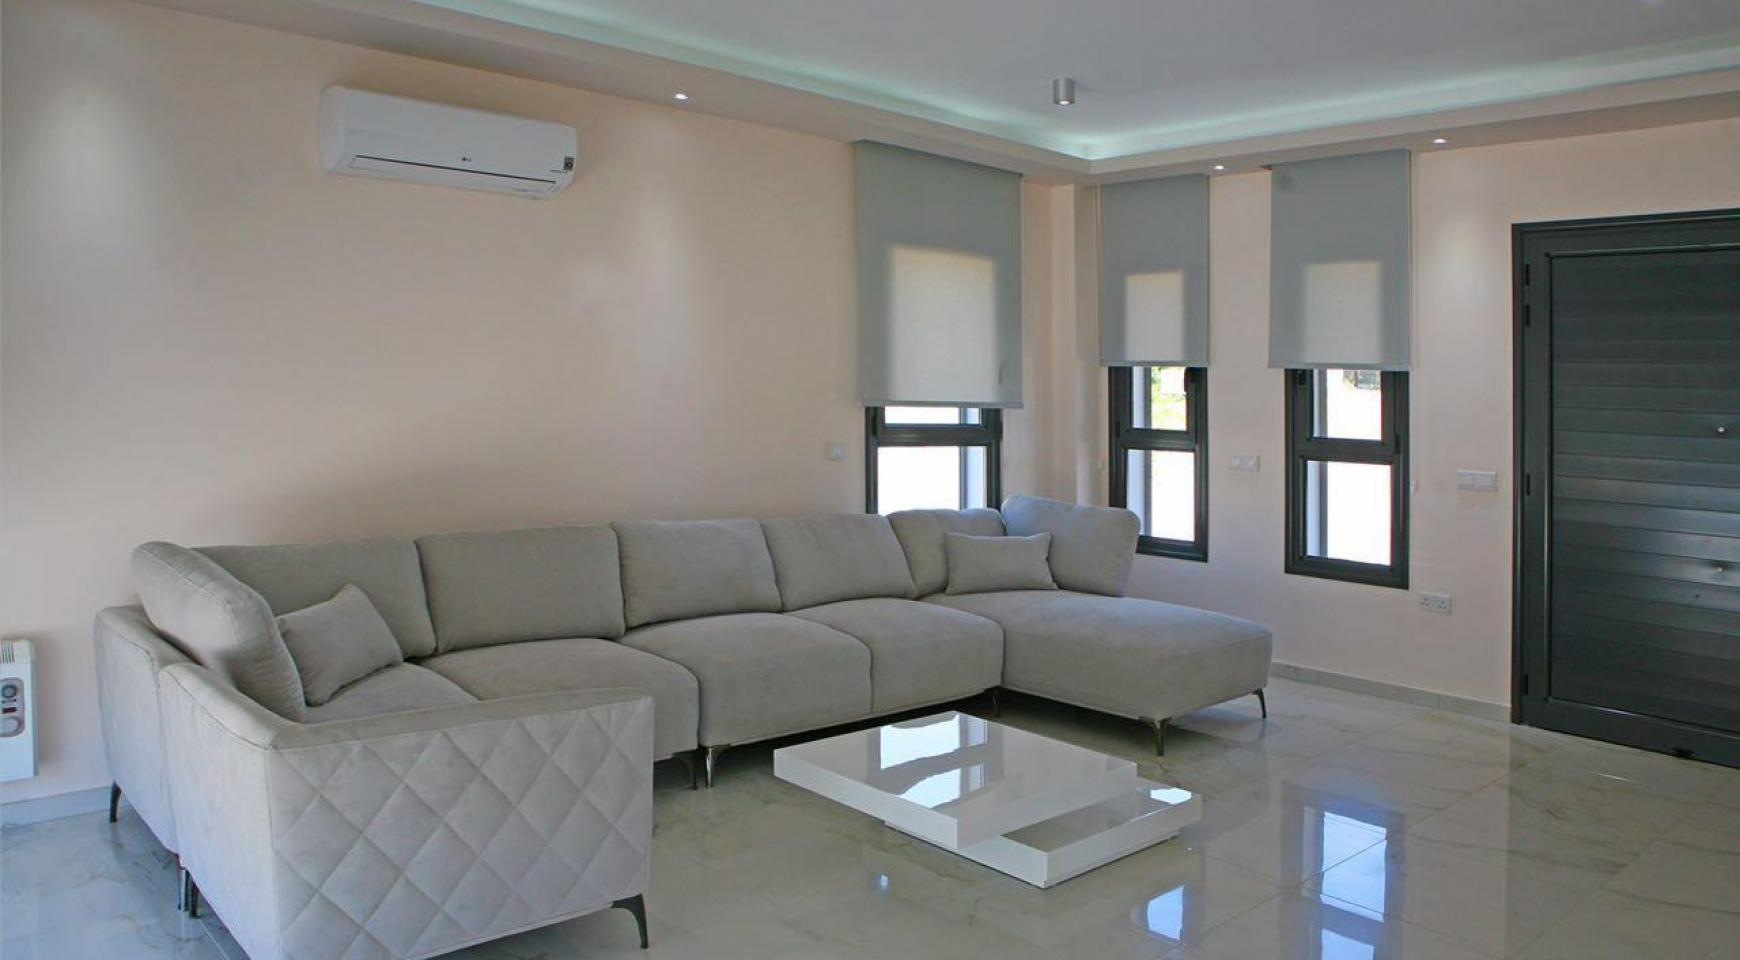 New Contemporary 3 Bedroom House in Central Location - 8